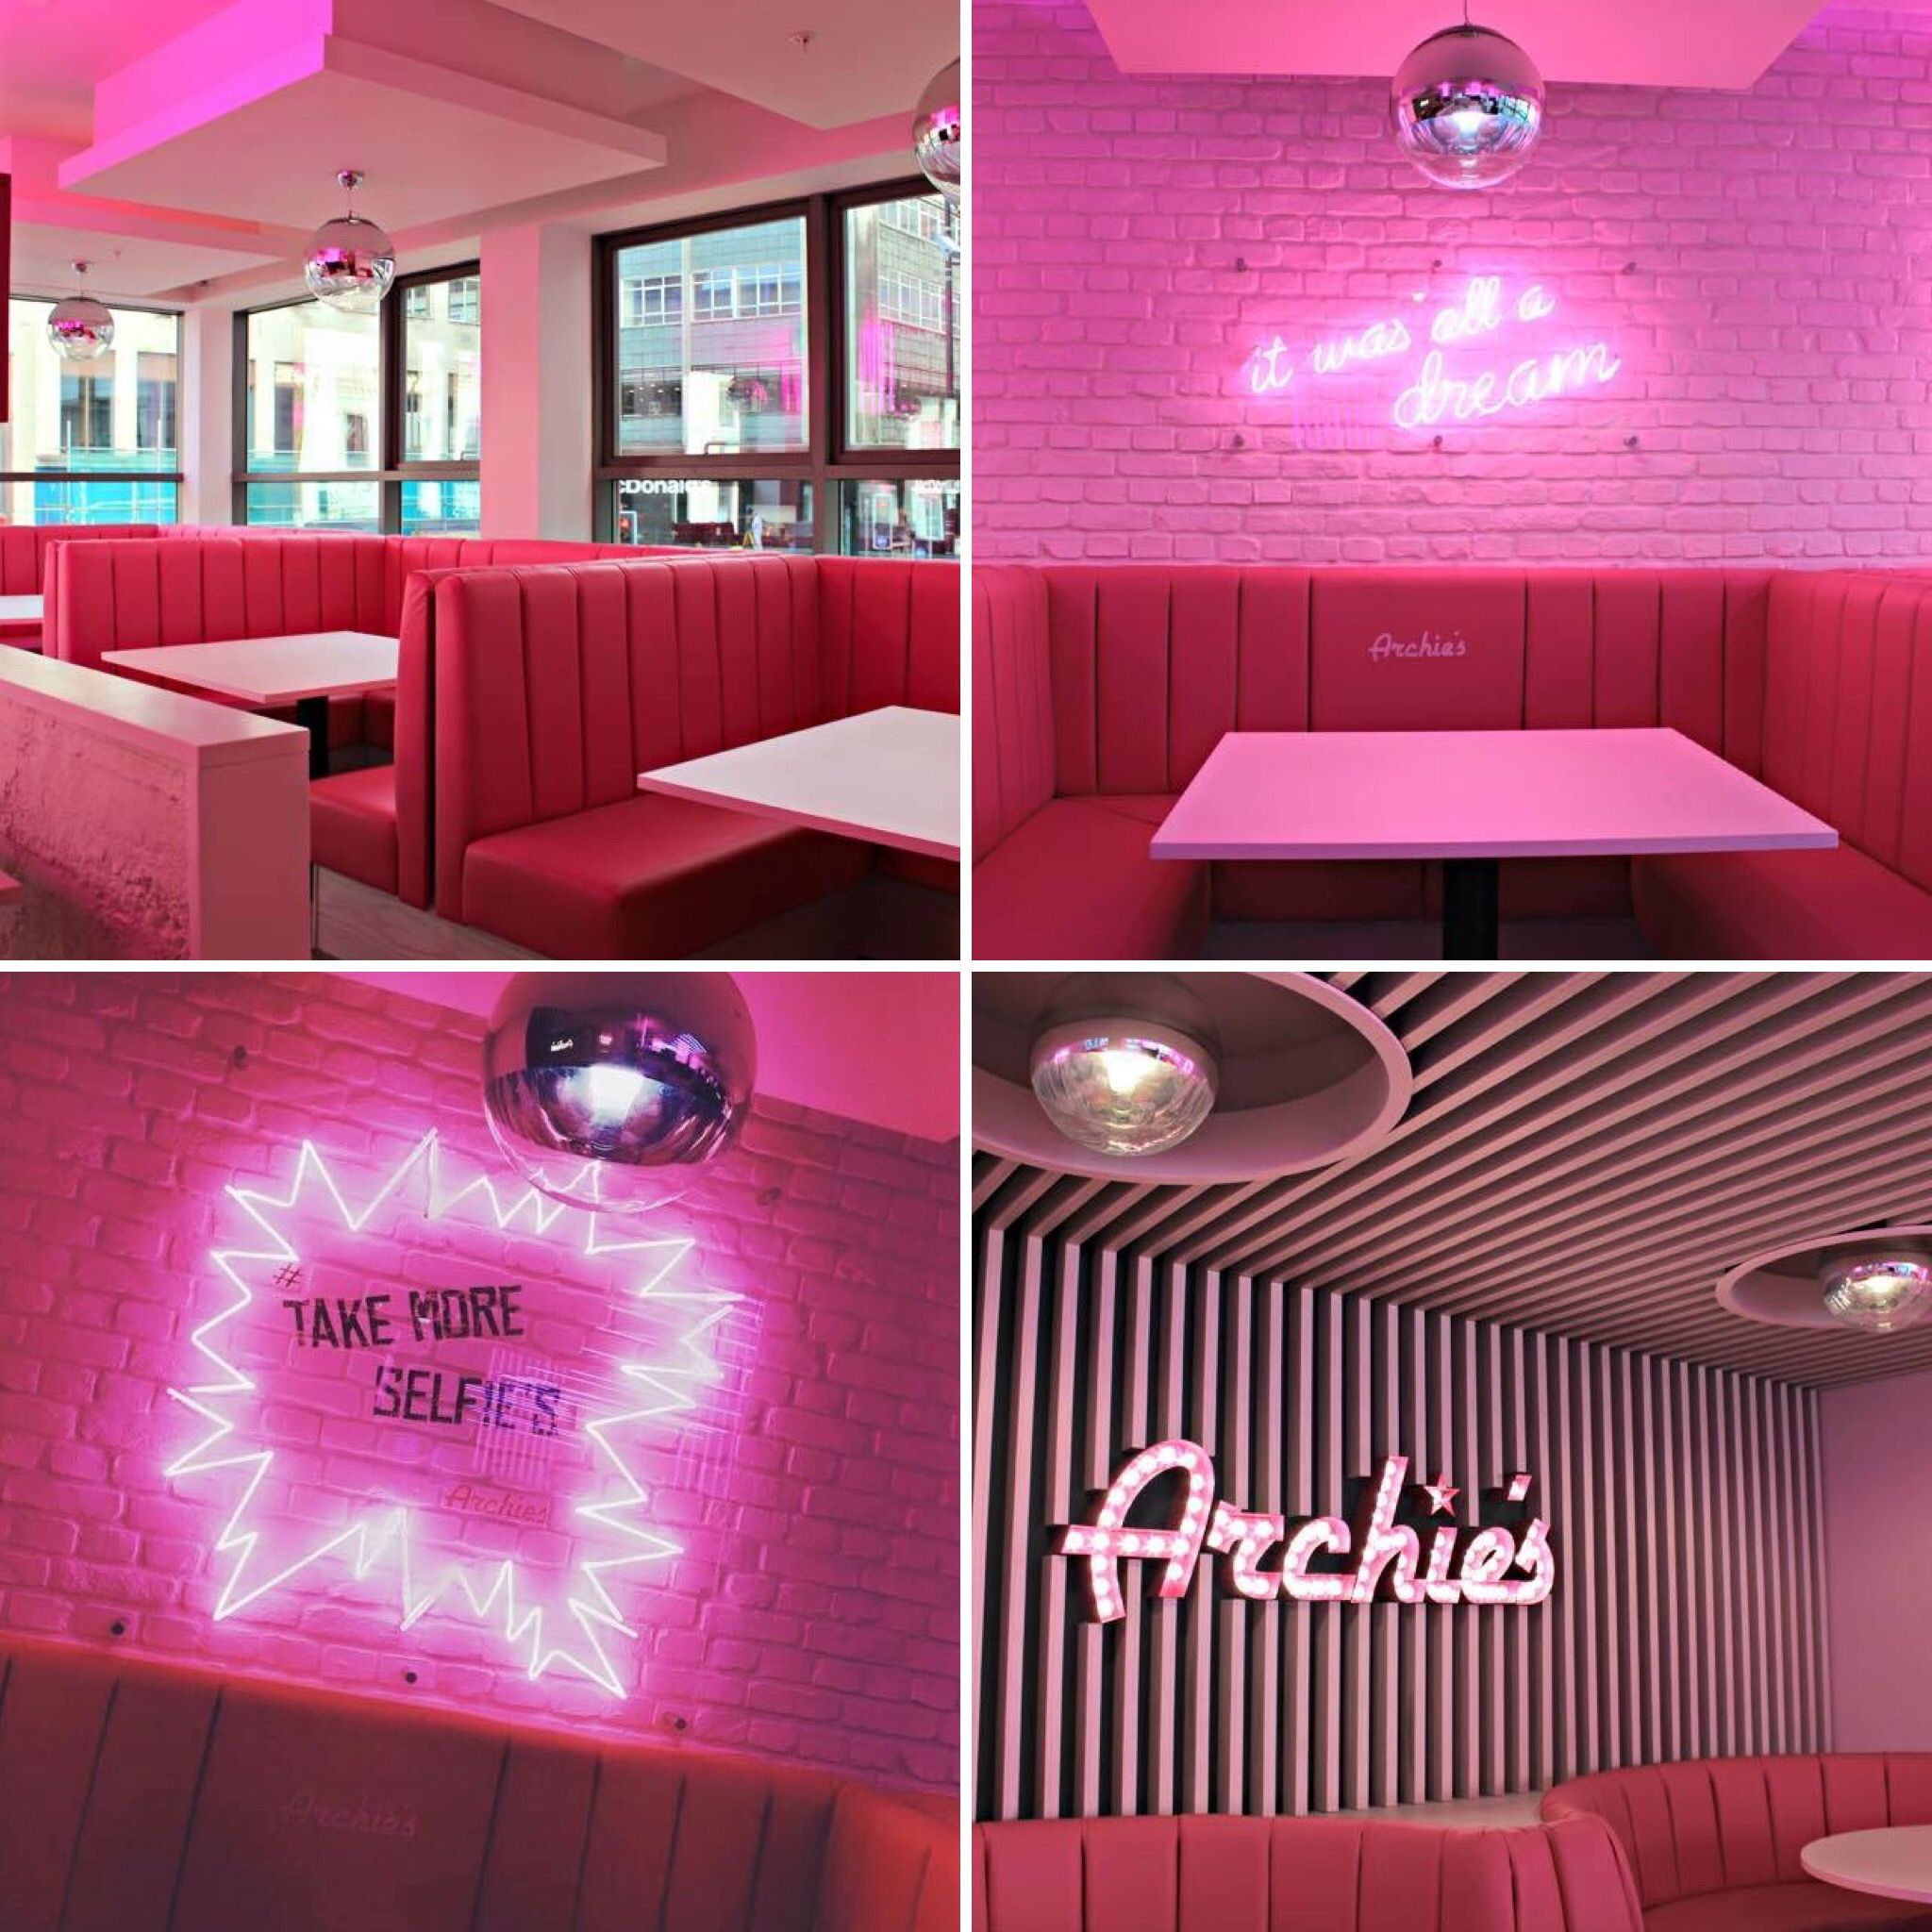 archies, liverpool. restaurant design | dv8 designs - completed